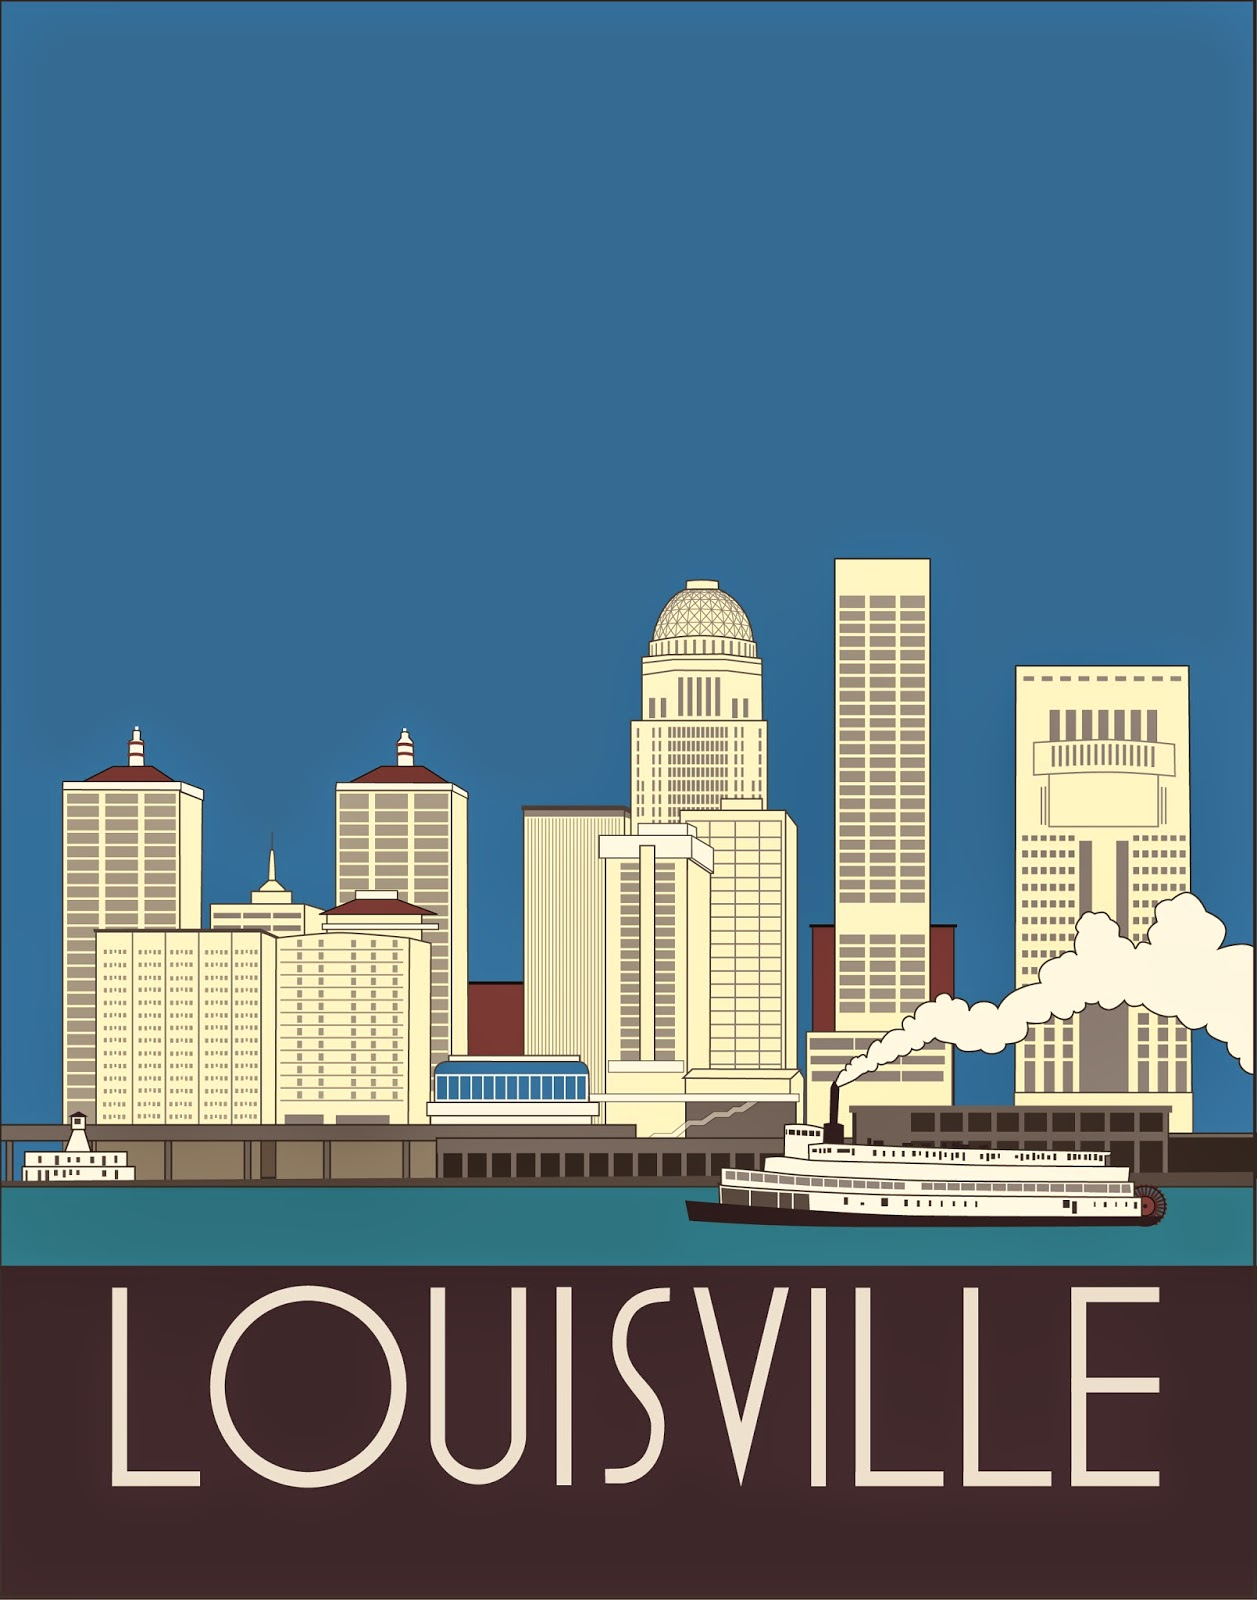 Louisville Kentucky Art Deco Skyline Josef Spalenka Adobe Illustrator